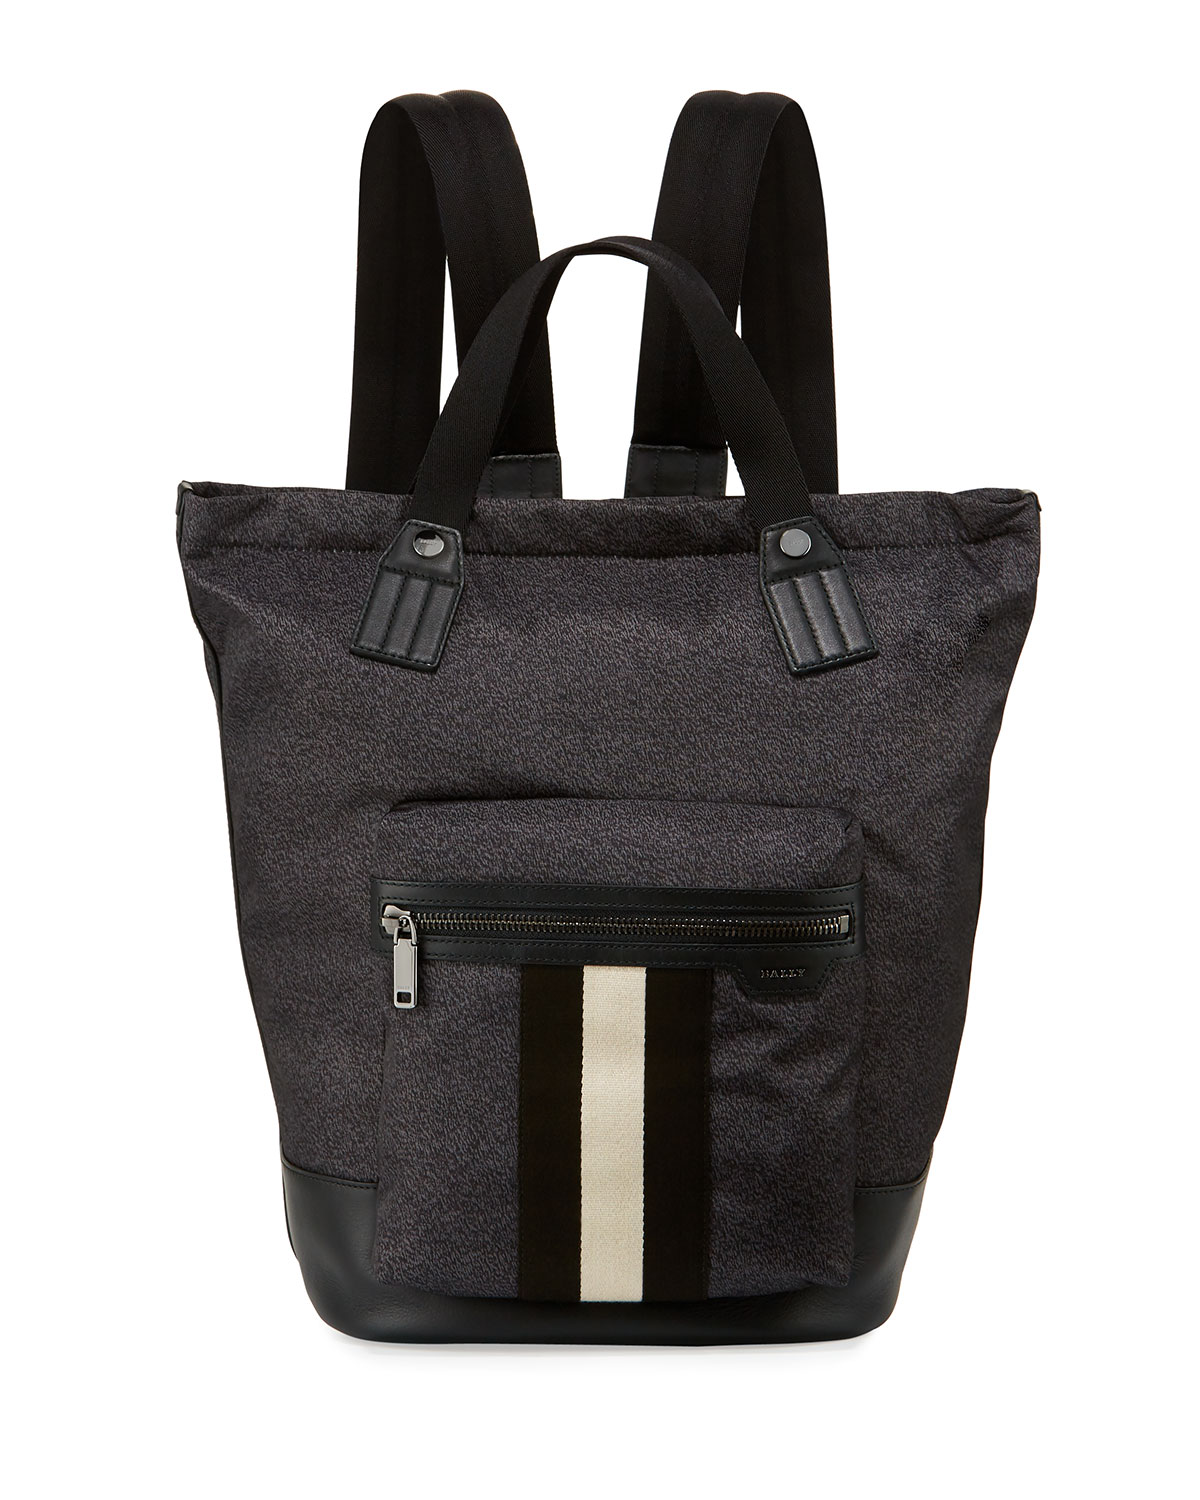 875b06860f Bally Crowley Nylon Tote-Backpack with Bally Stripe